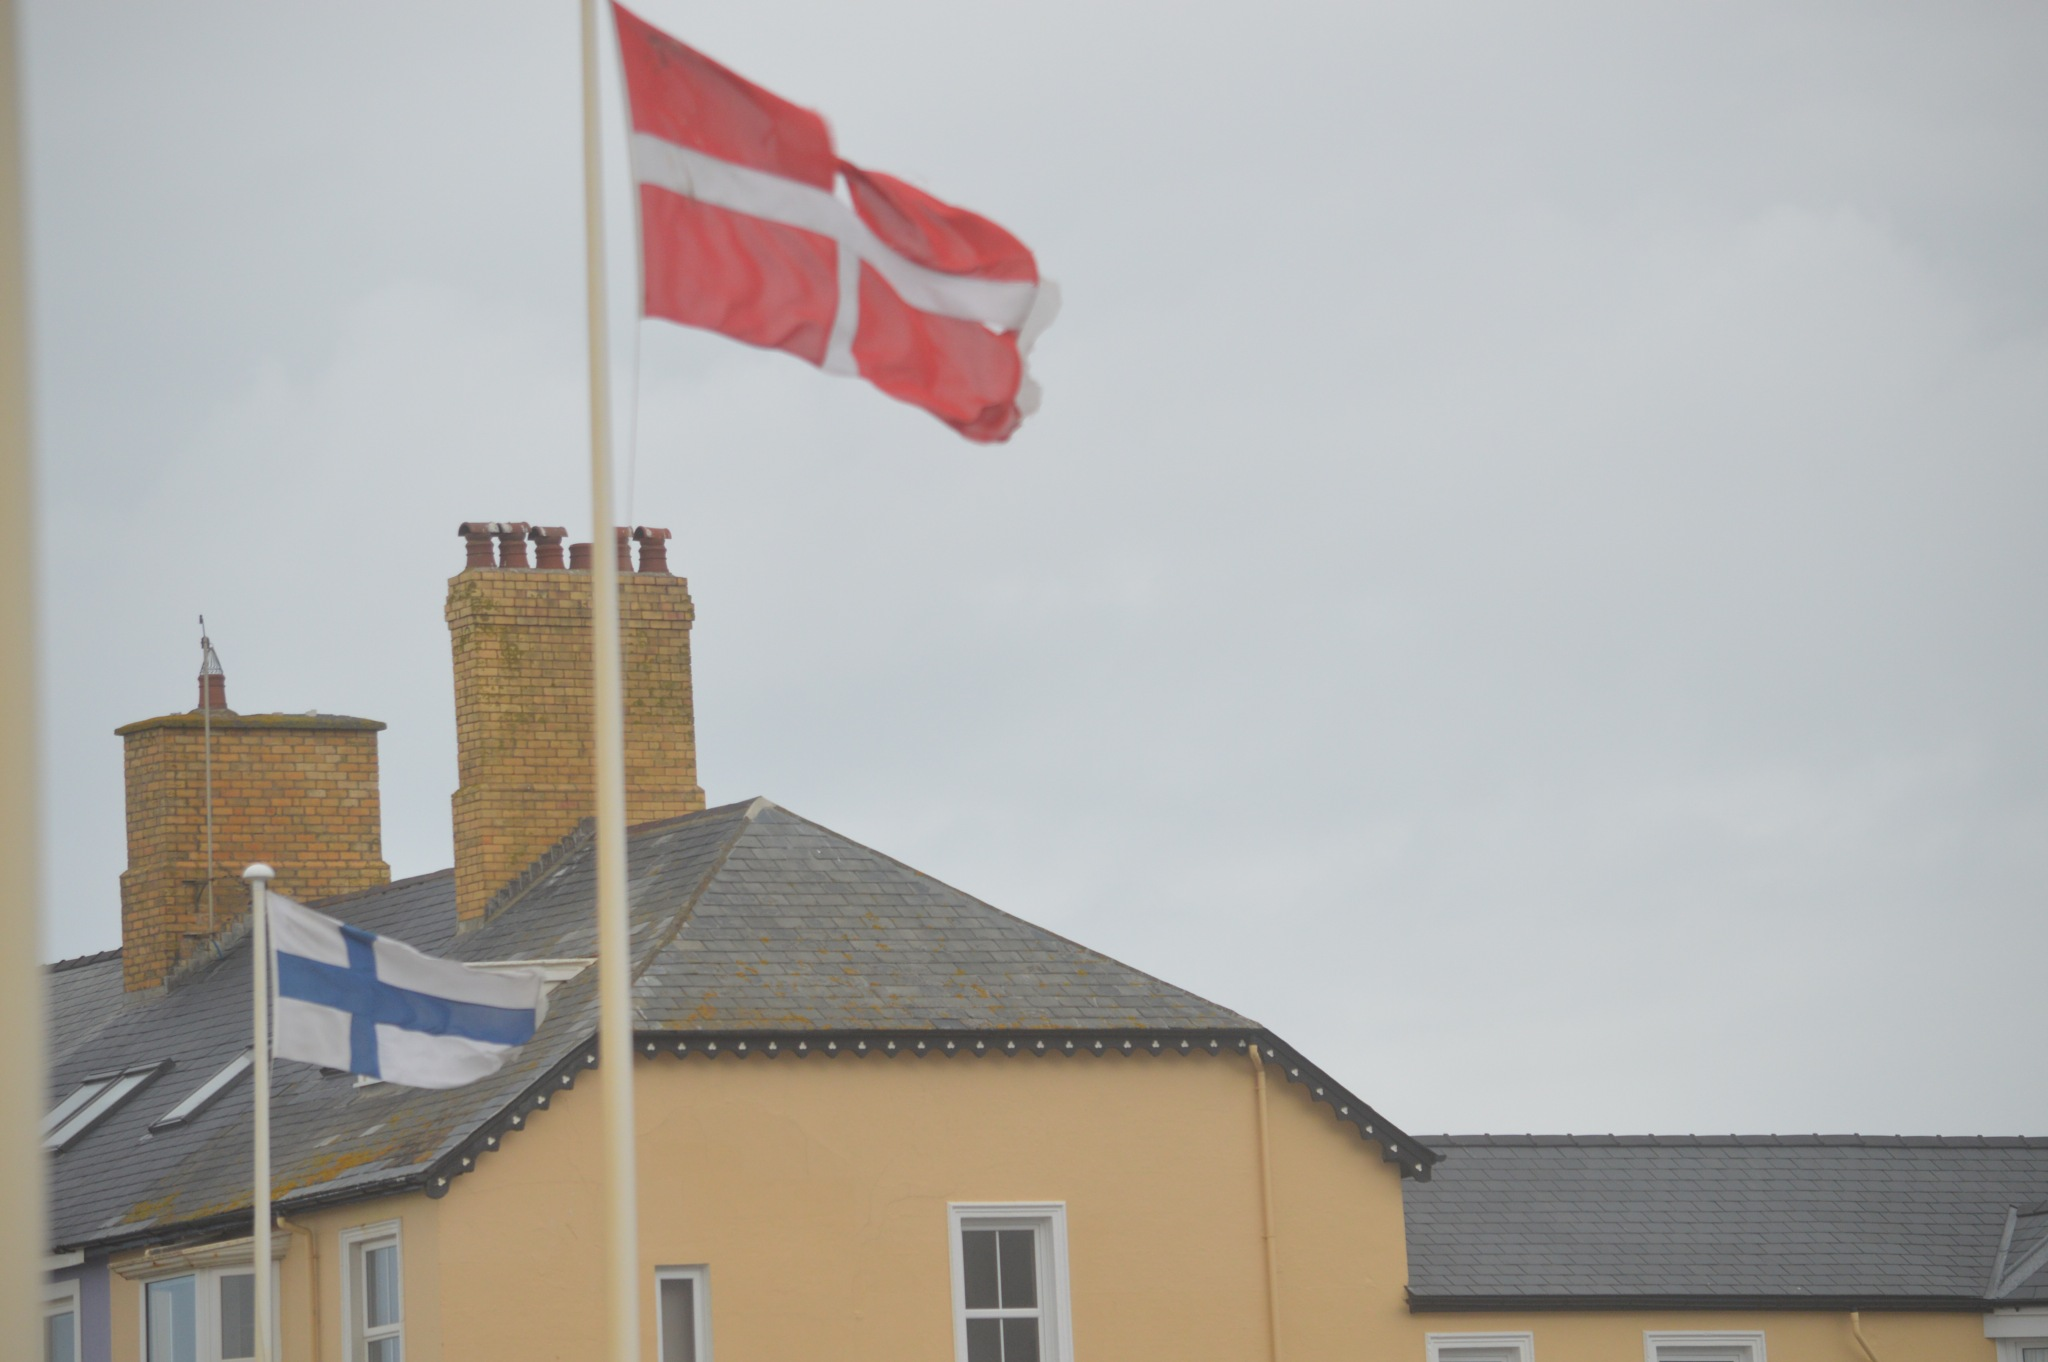 Flags At Aberystwyth in the wind by adrian.williams.58323